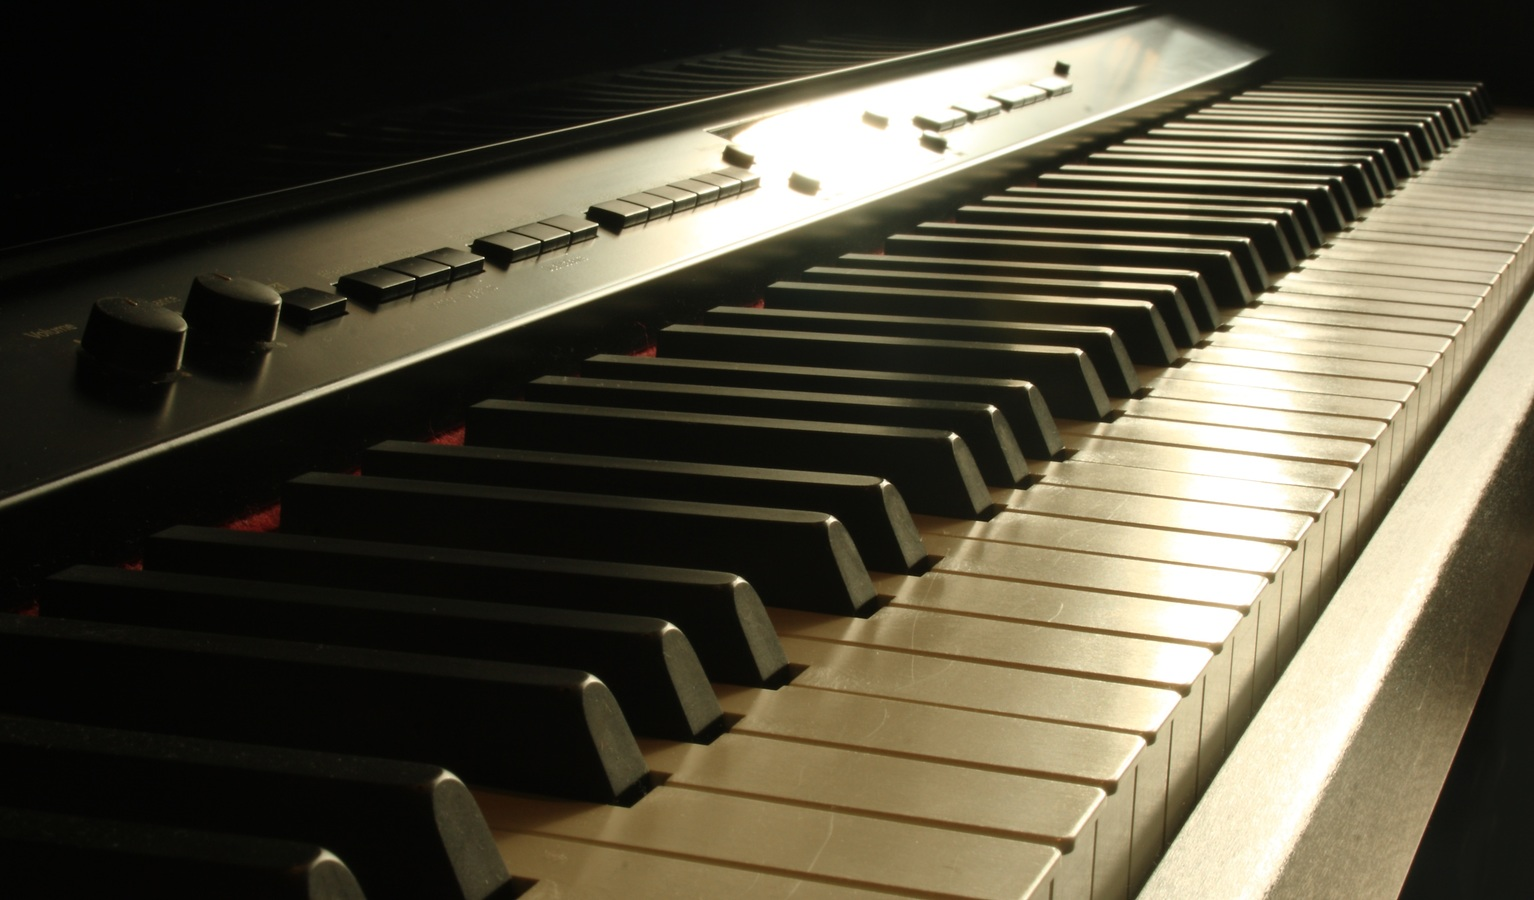 music-keyboard-technology-piano-musical-instrument-keys-828847-pxhere.com